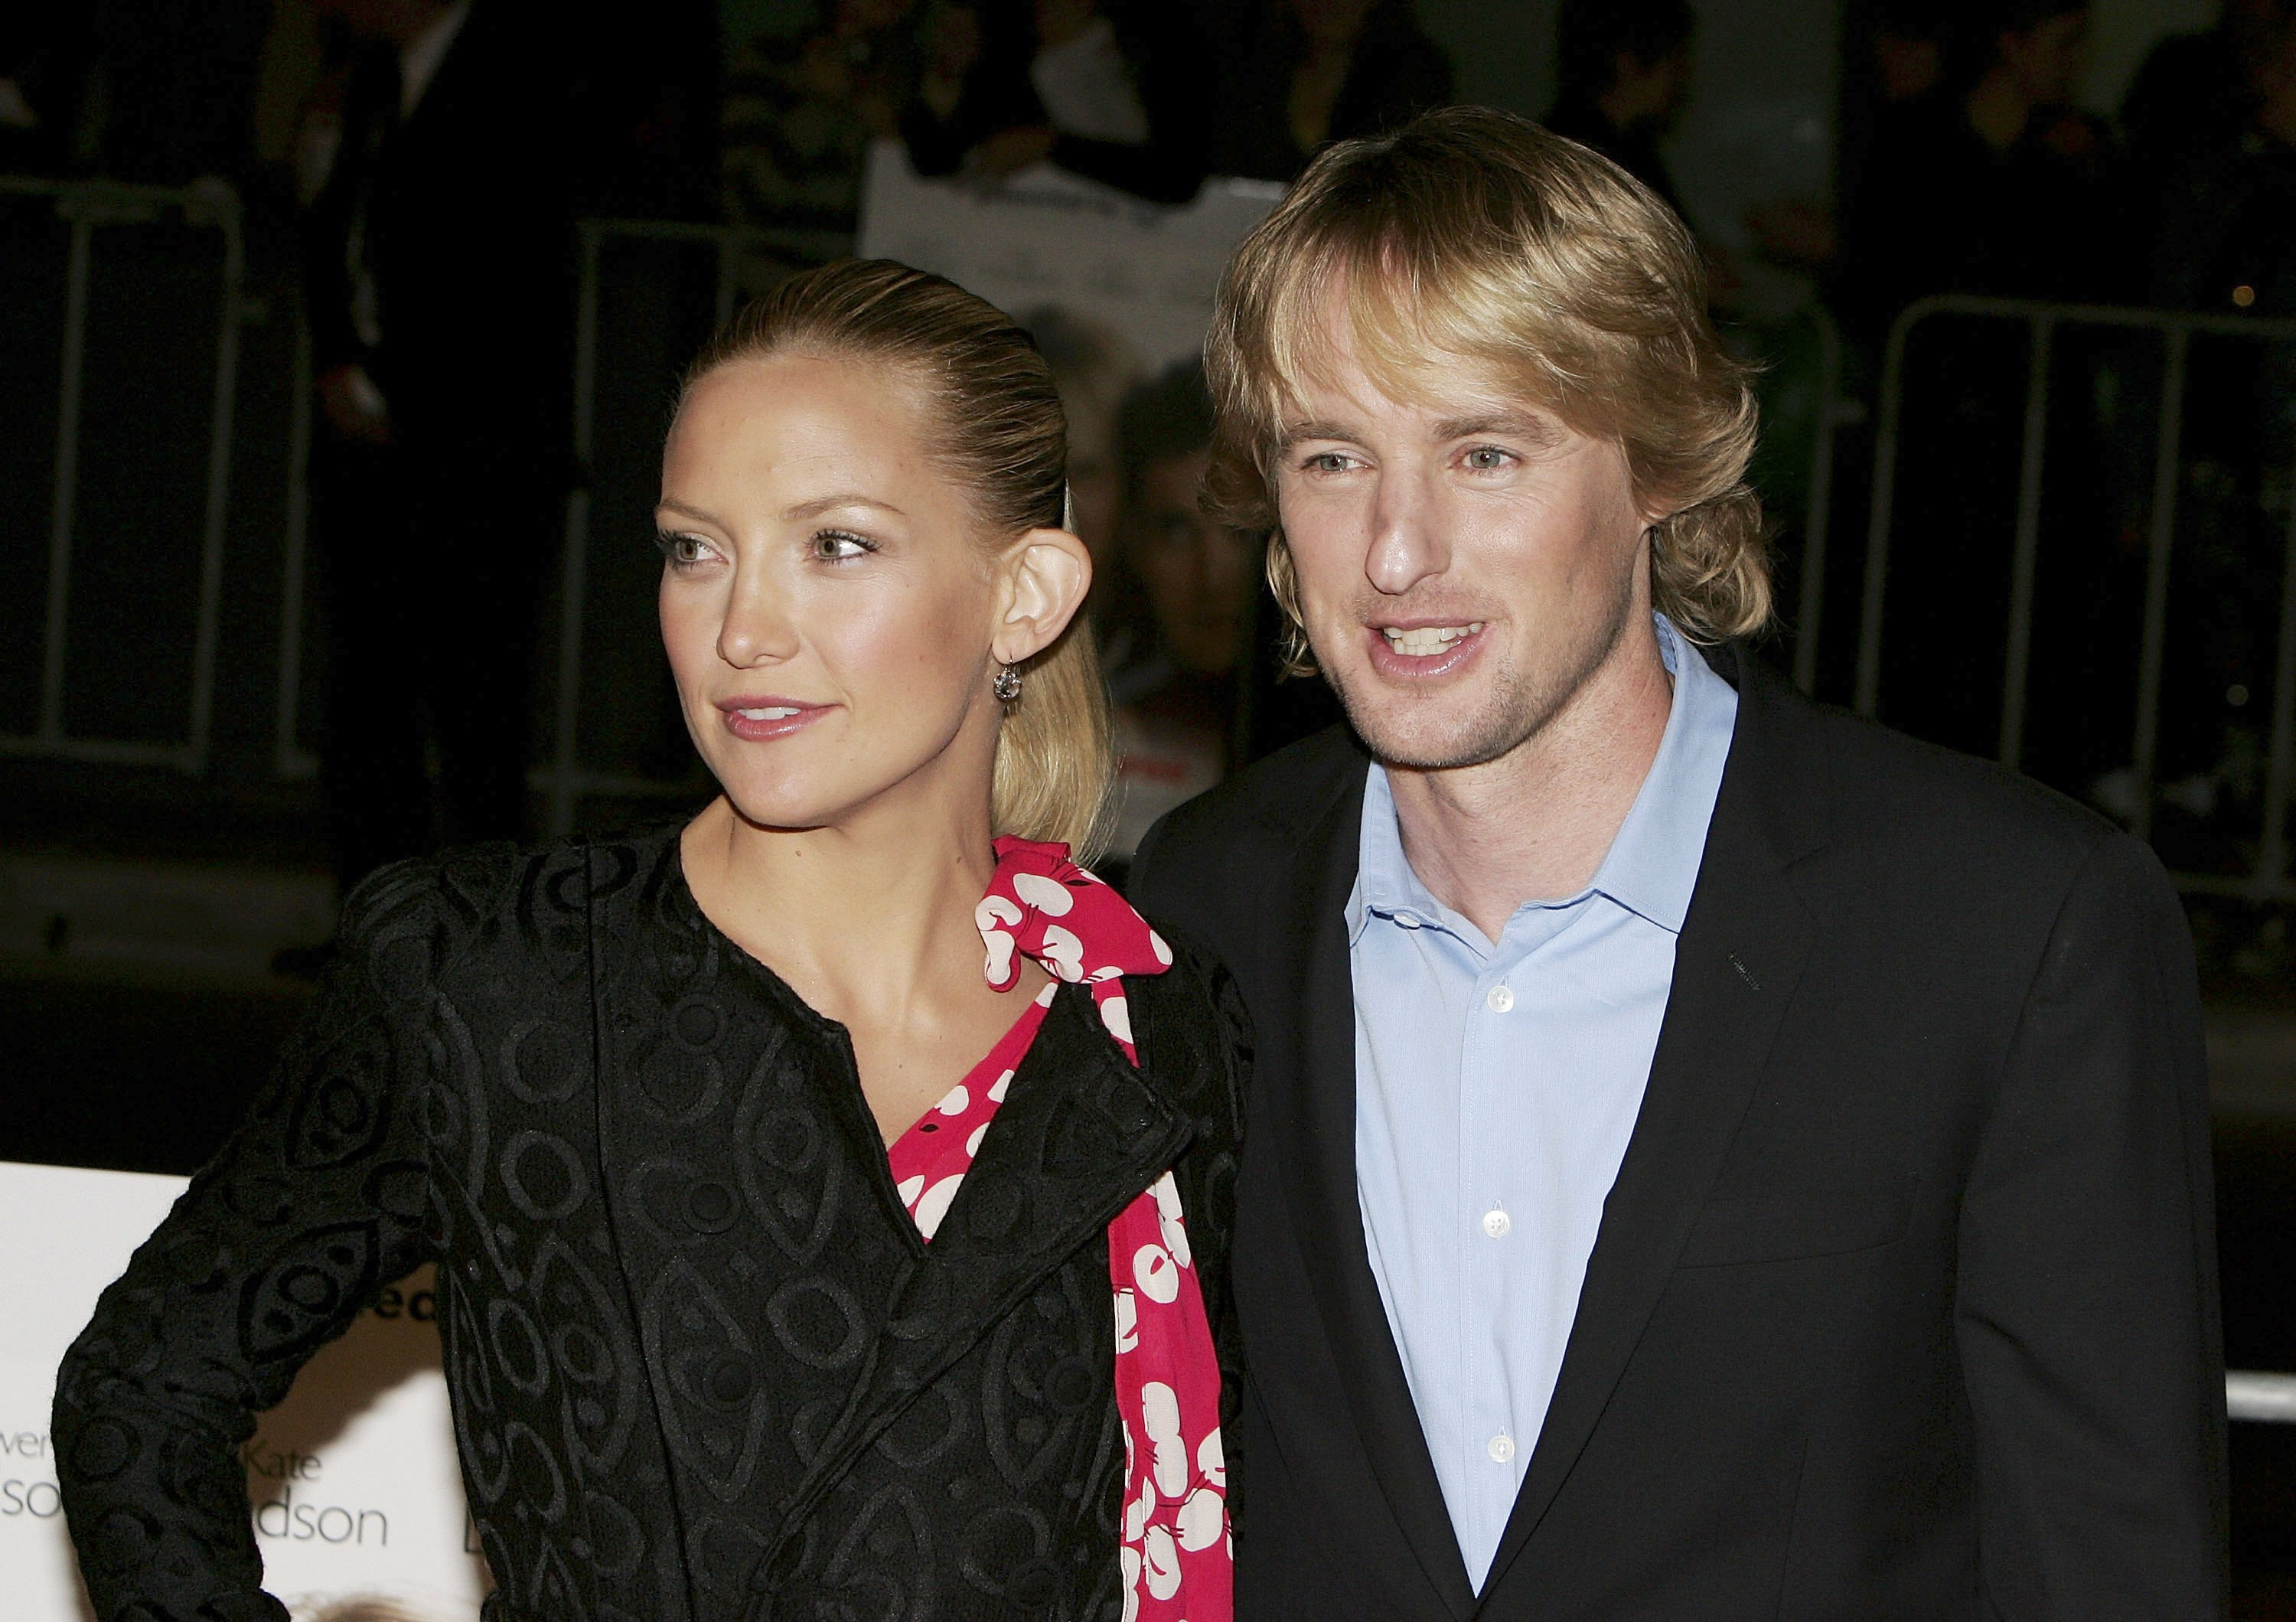 why did kate hudson and owen wilson break up